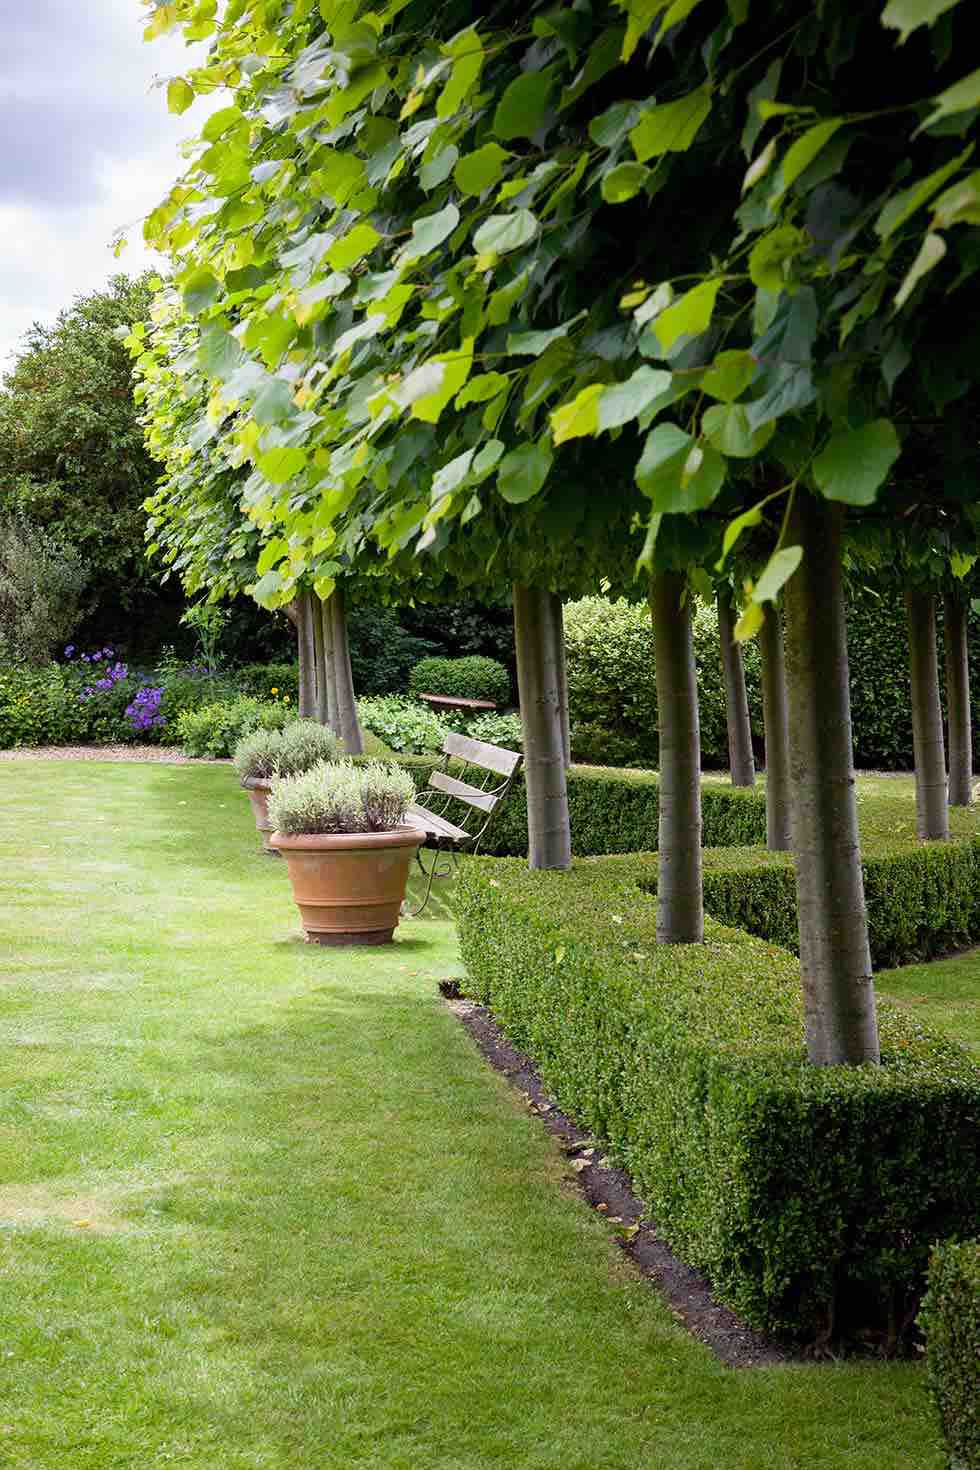 repetition of trees in semi-formal gardens